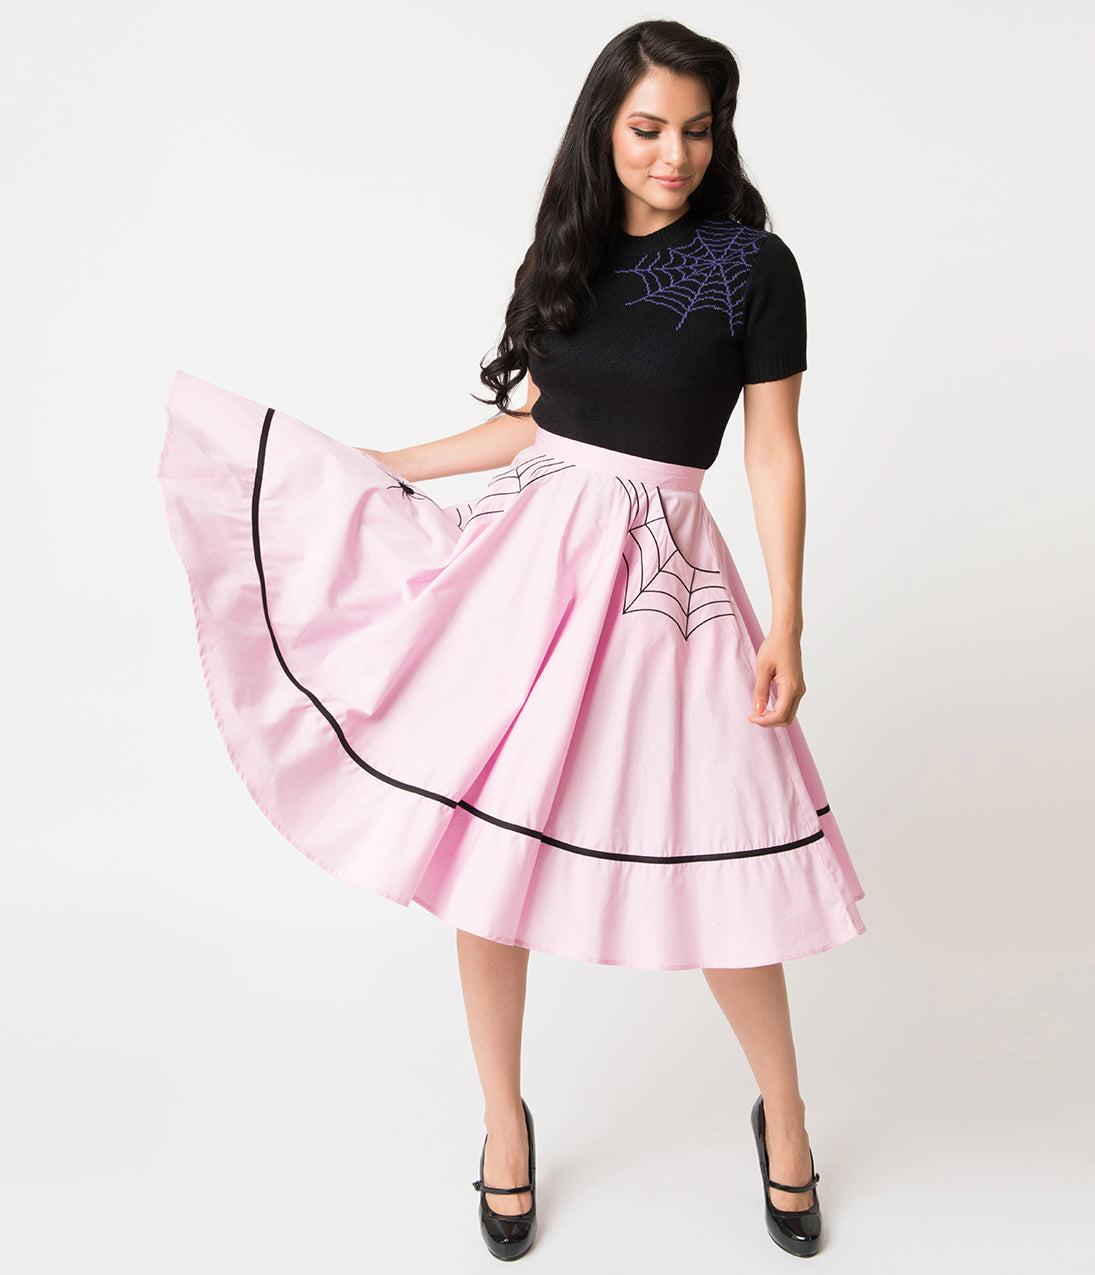 Vintage Retro Halloween Themed Clothing Hell Bunny 1950S Style Pink Miss Muffet Embroidered Swing Skirt $62.00 AT vintagedancer.com